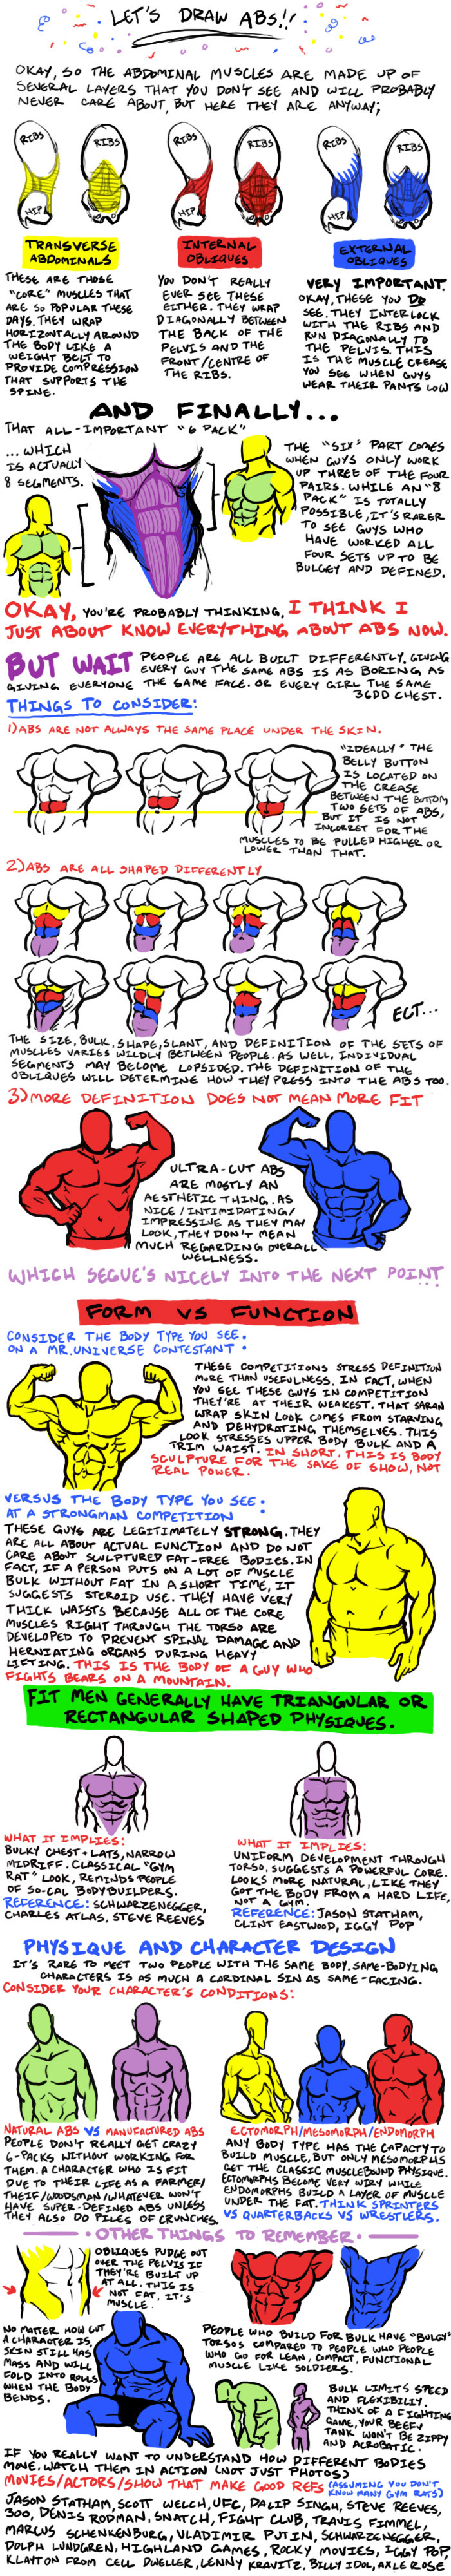 Abdomination: How to draw beef